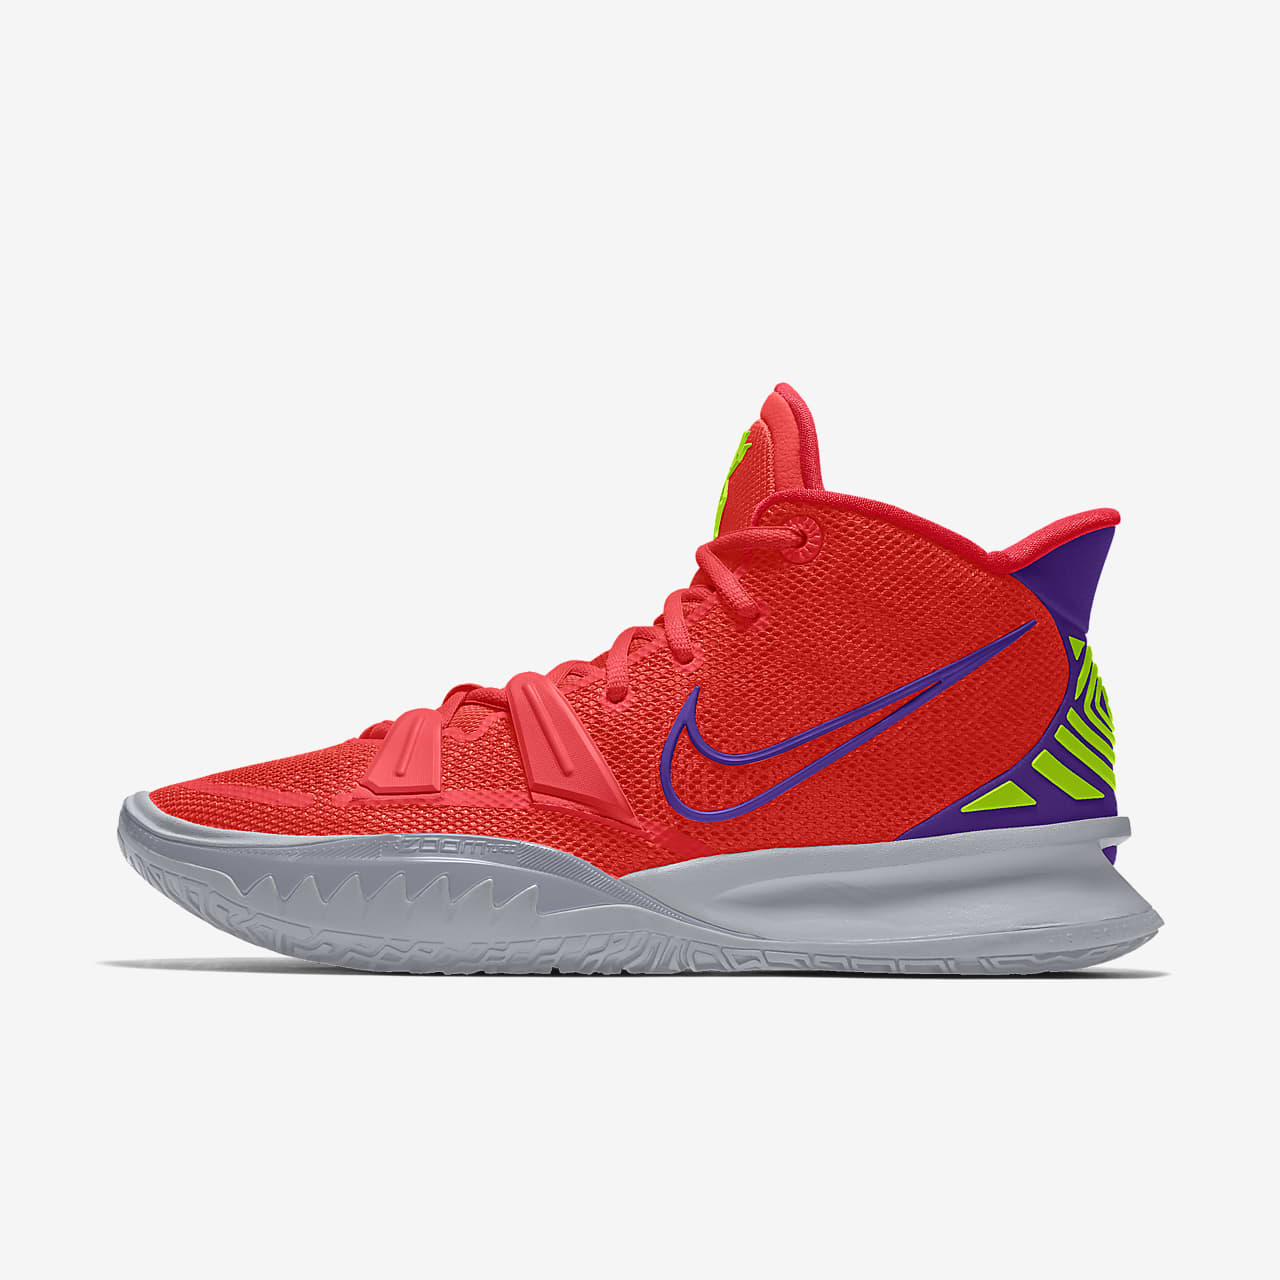 Chaussure de basketball personnalisable Kyrie 7 By You